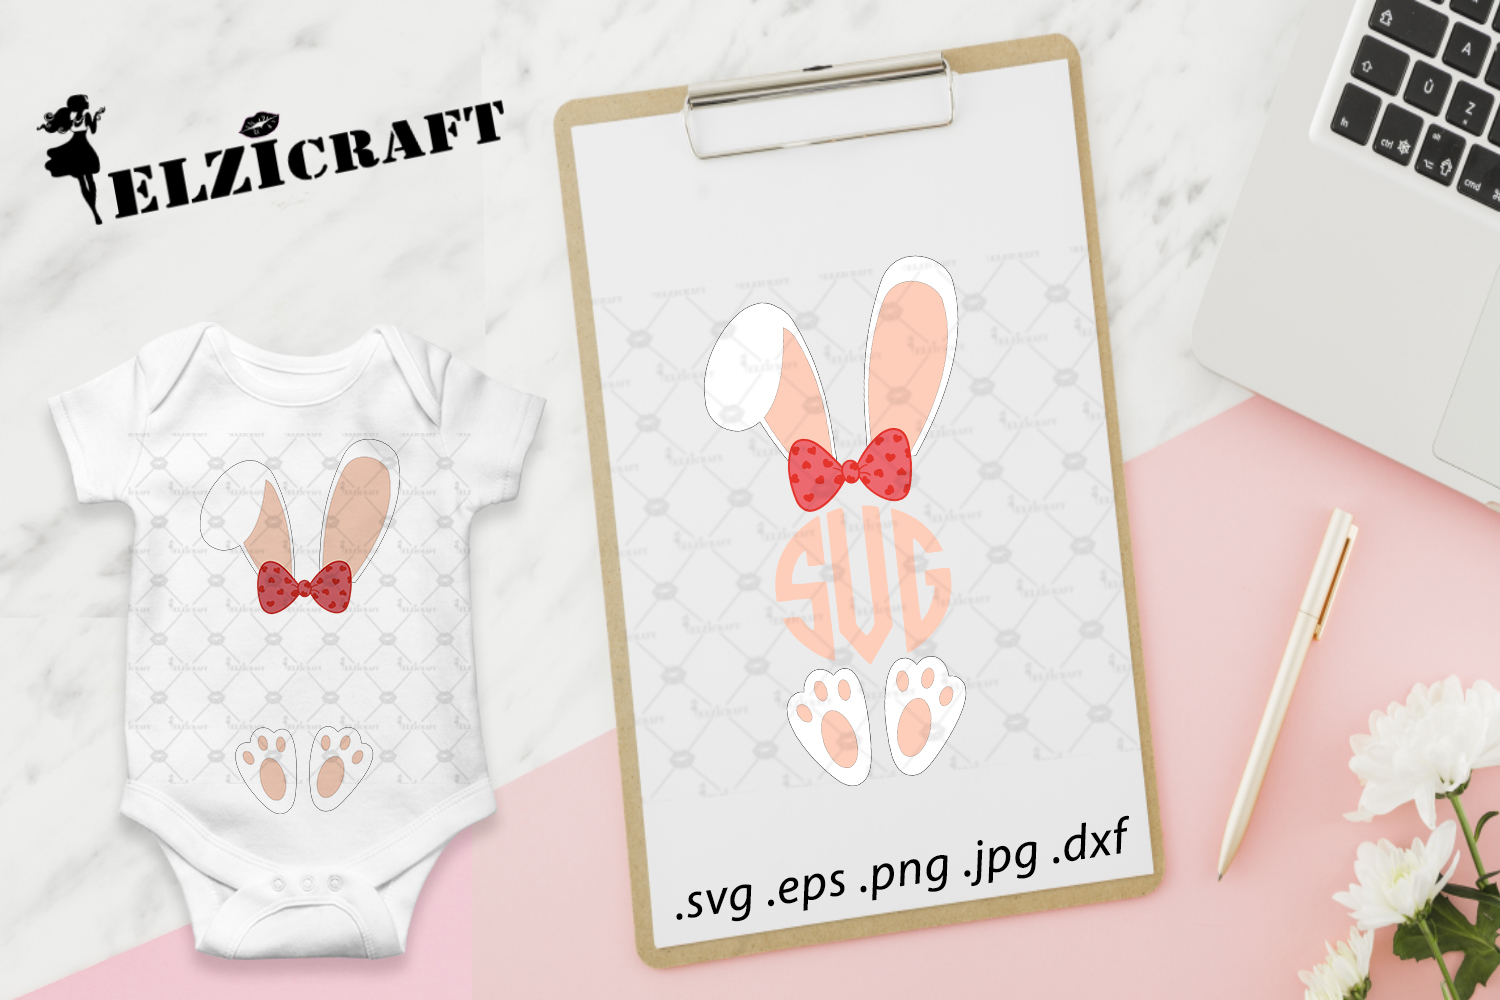 Download Free Girl Bunny Monogram Bunny Ears Easter Graphic By Elzicraft for Cricut Explore, Silhouette and other cutting machines.